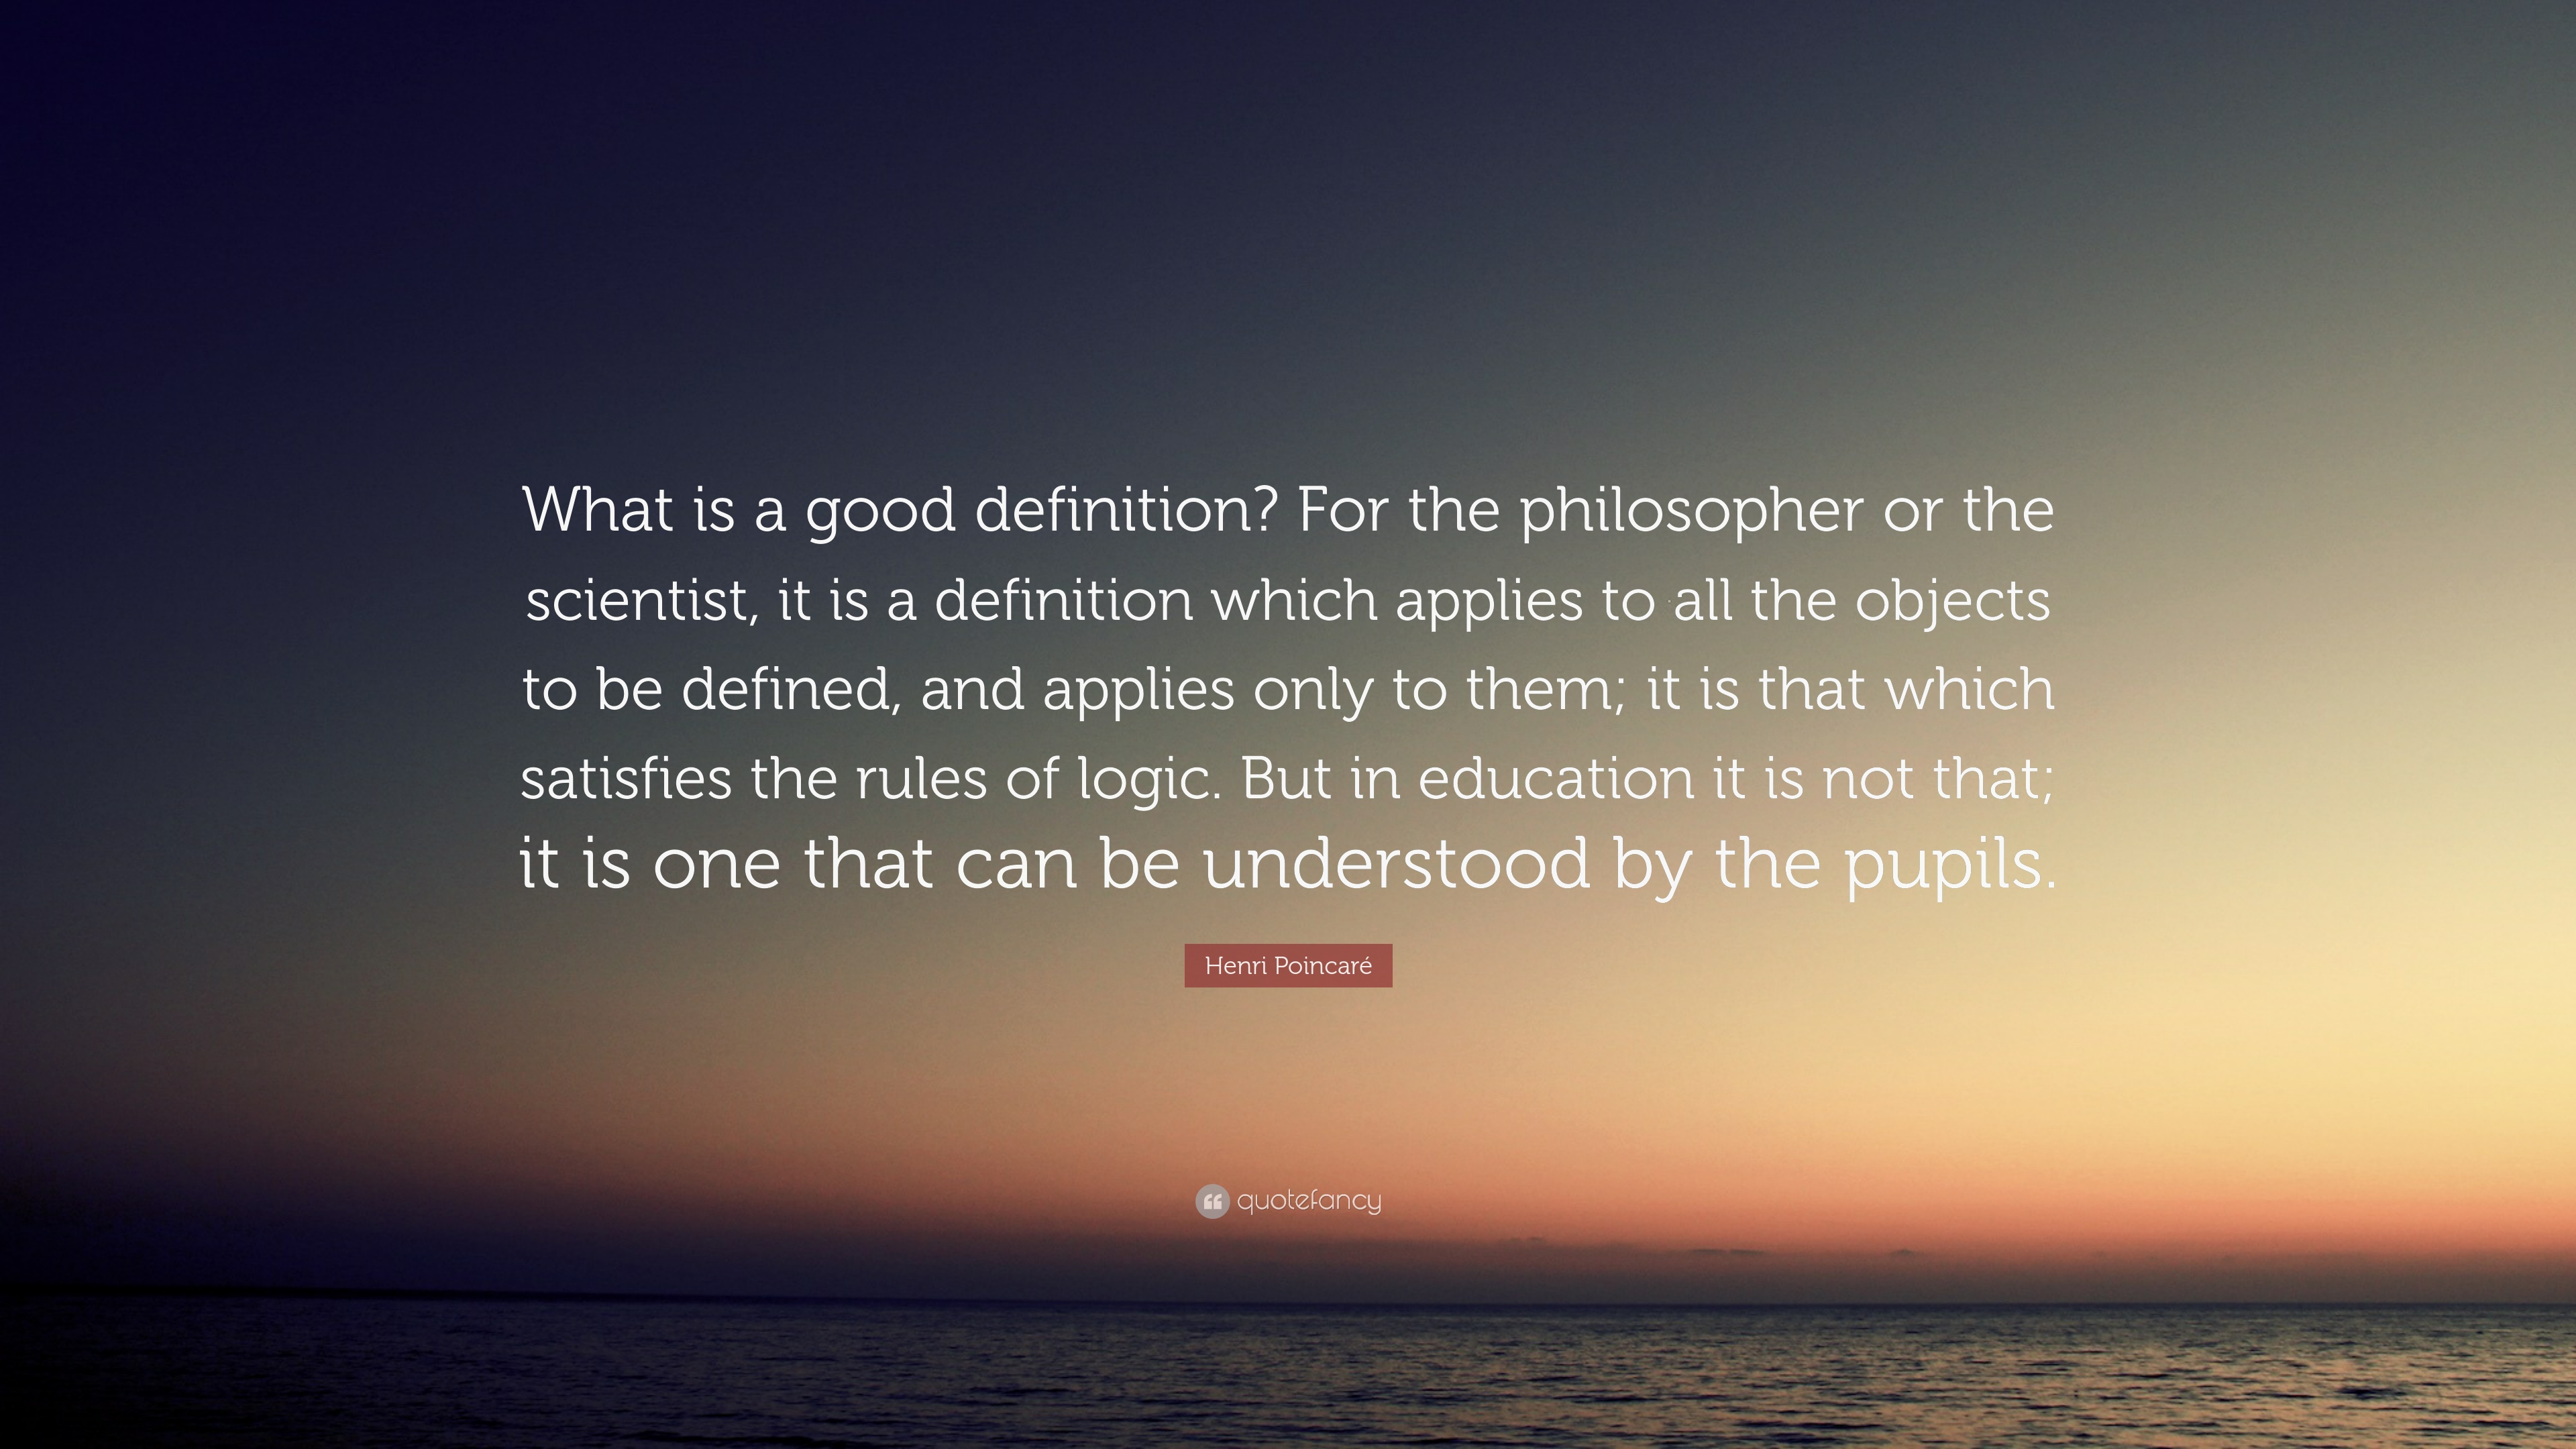 What is good (definition) 53